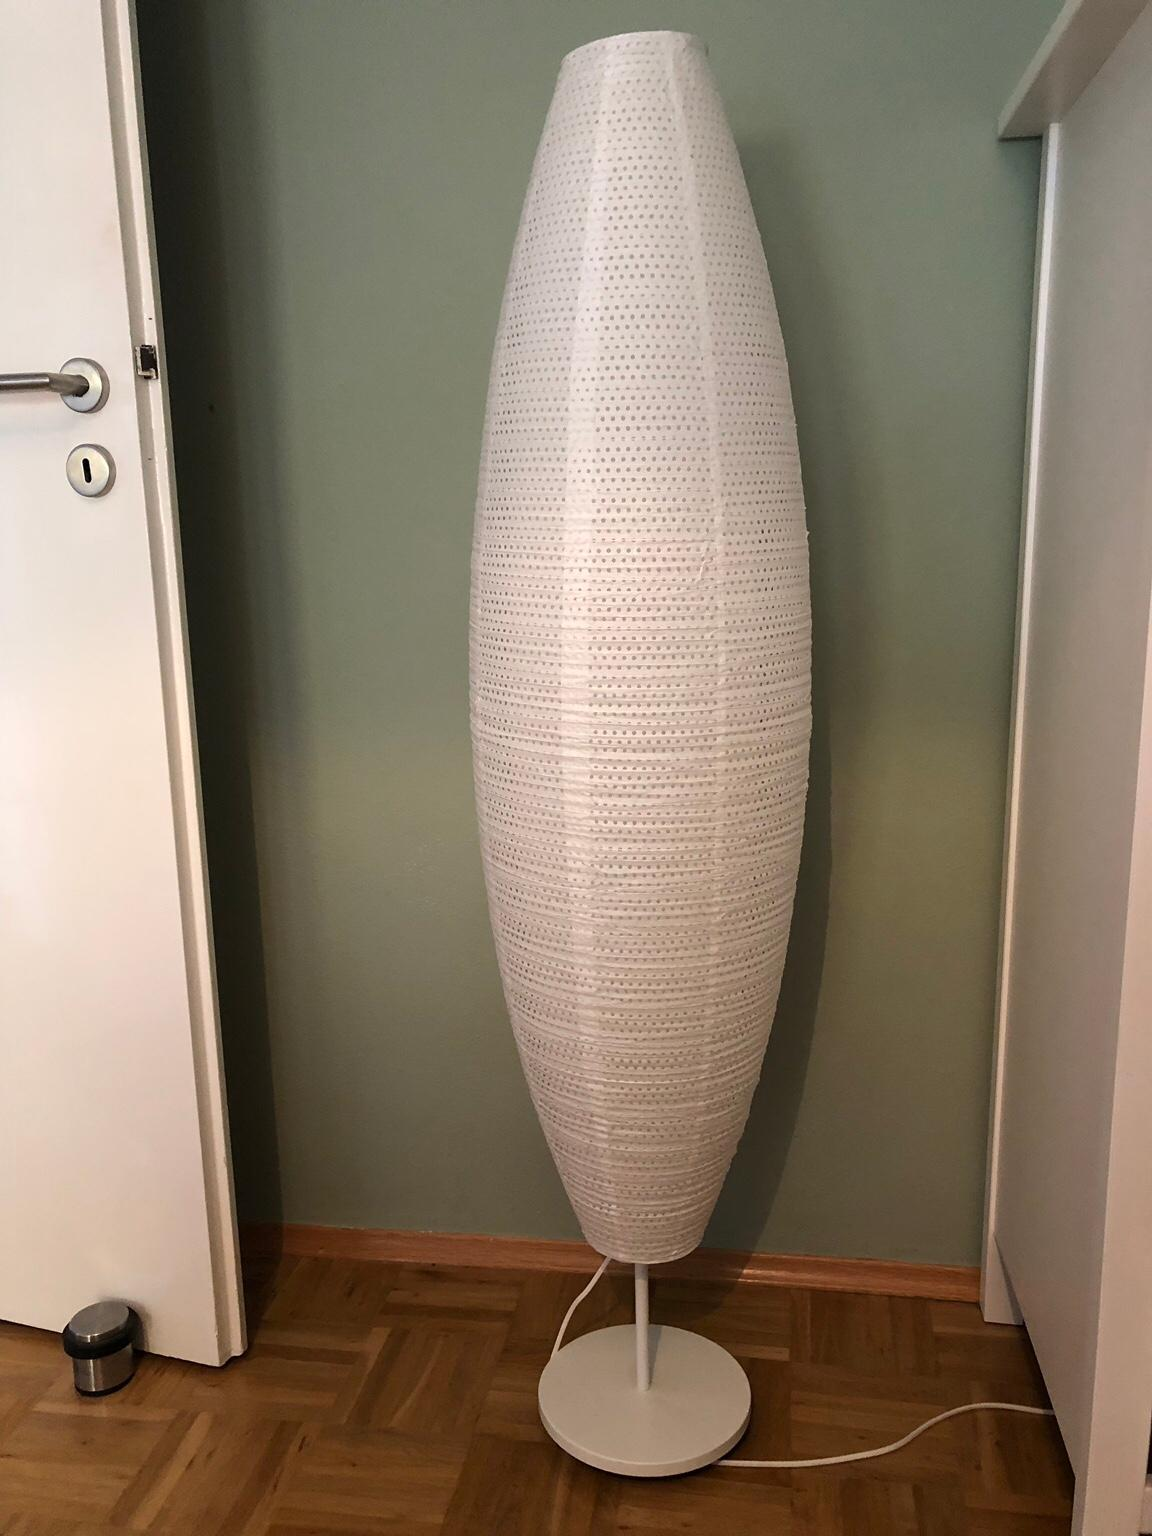 Ikea Stehlampe Aus Papier Weiss In 76229 Karlsruhe For 5 00 For